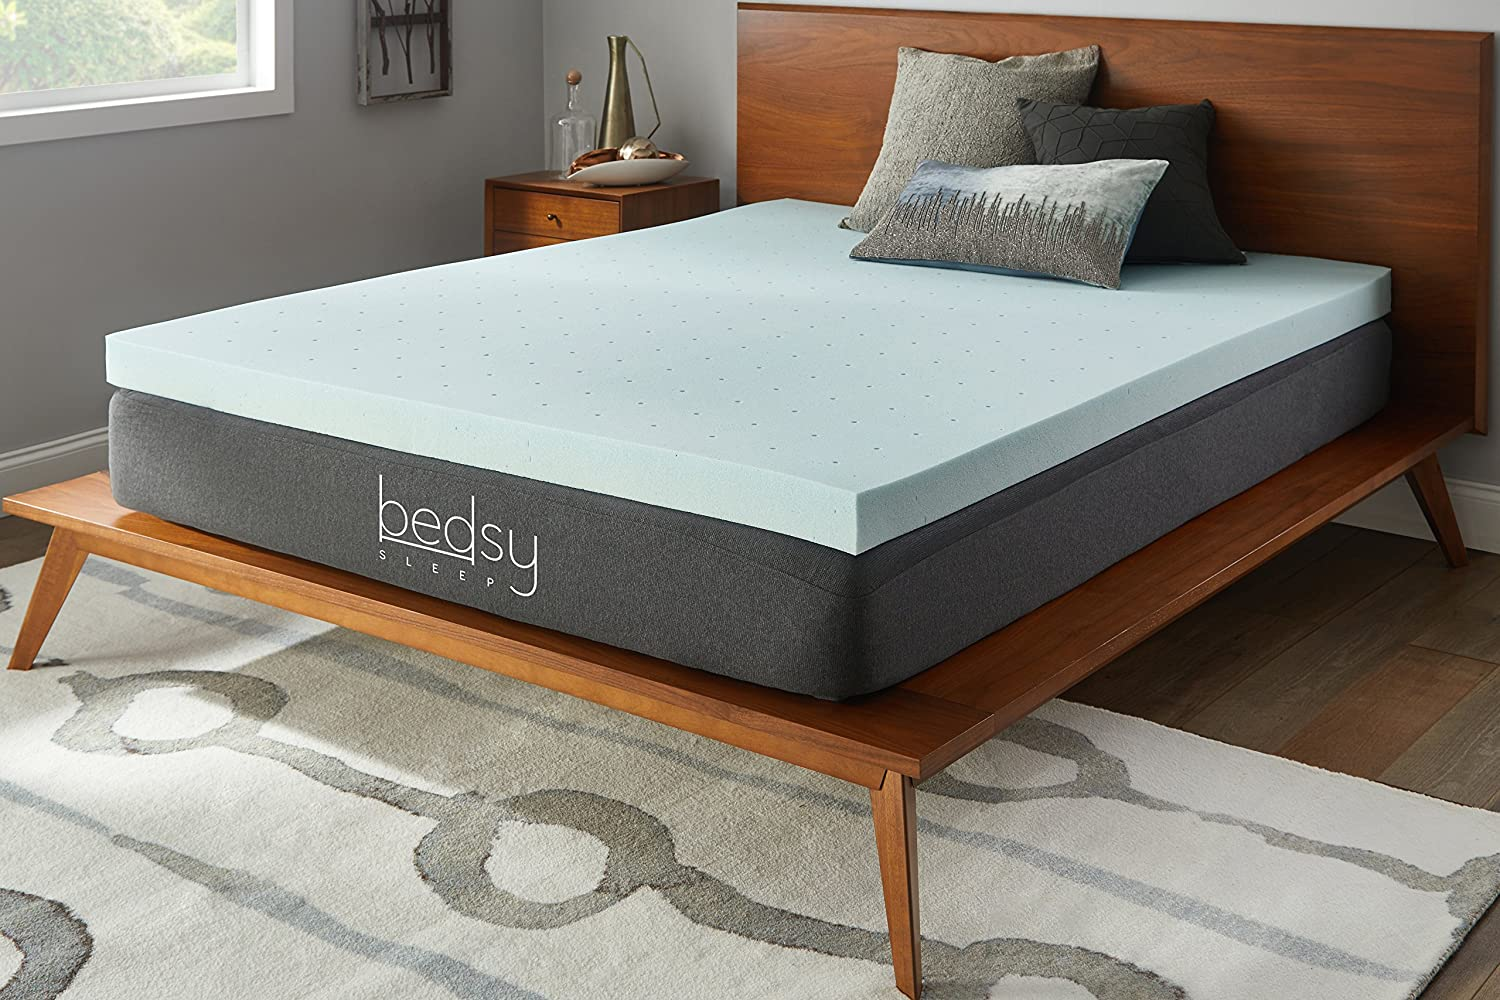 Bedsy Sleep 3 Gel Memory Foam Mattress Topper, Soft, Full